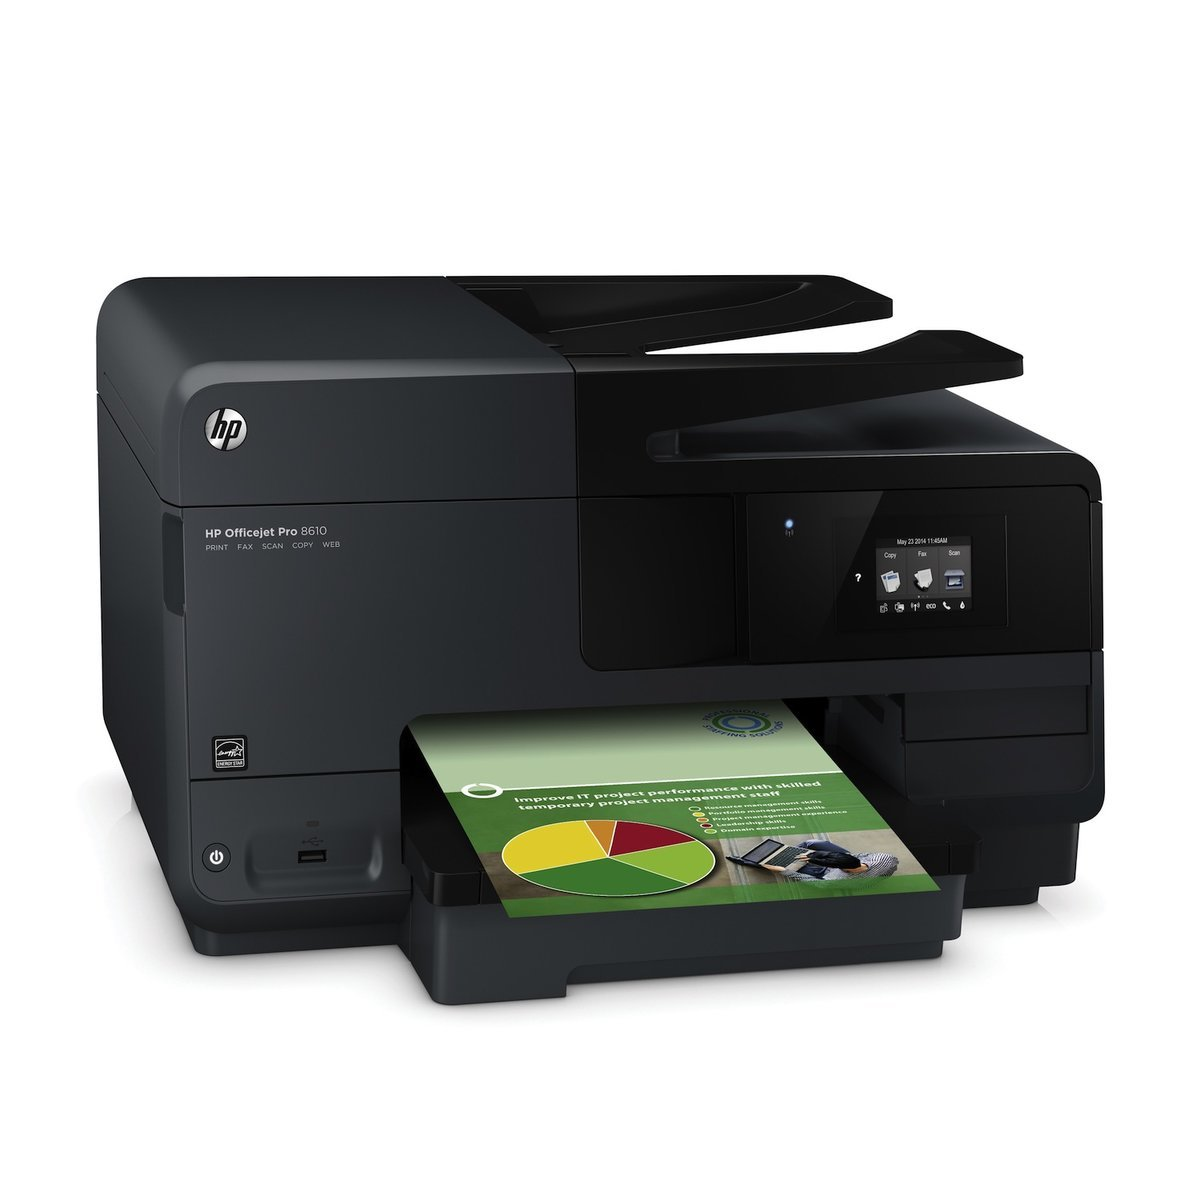 Best hp office deskjet pro 8610 a7f64a printers prices in for Best home office hp inkjet printer